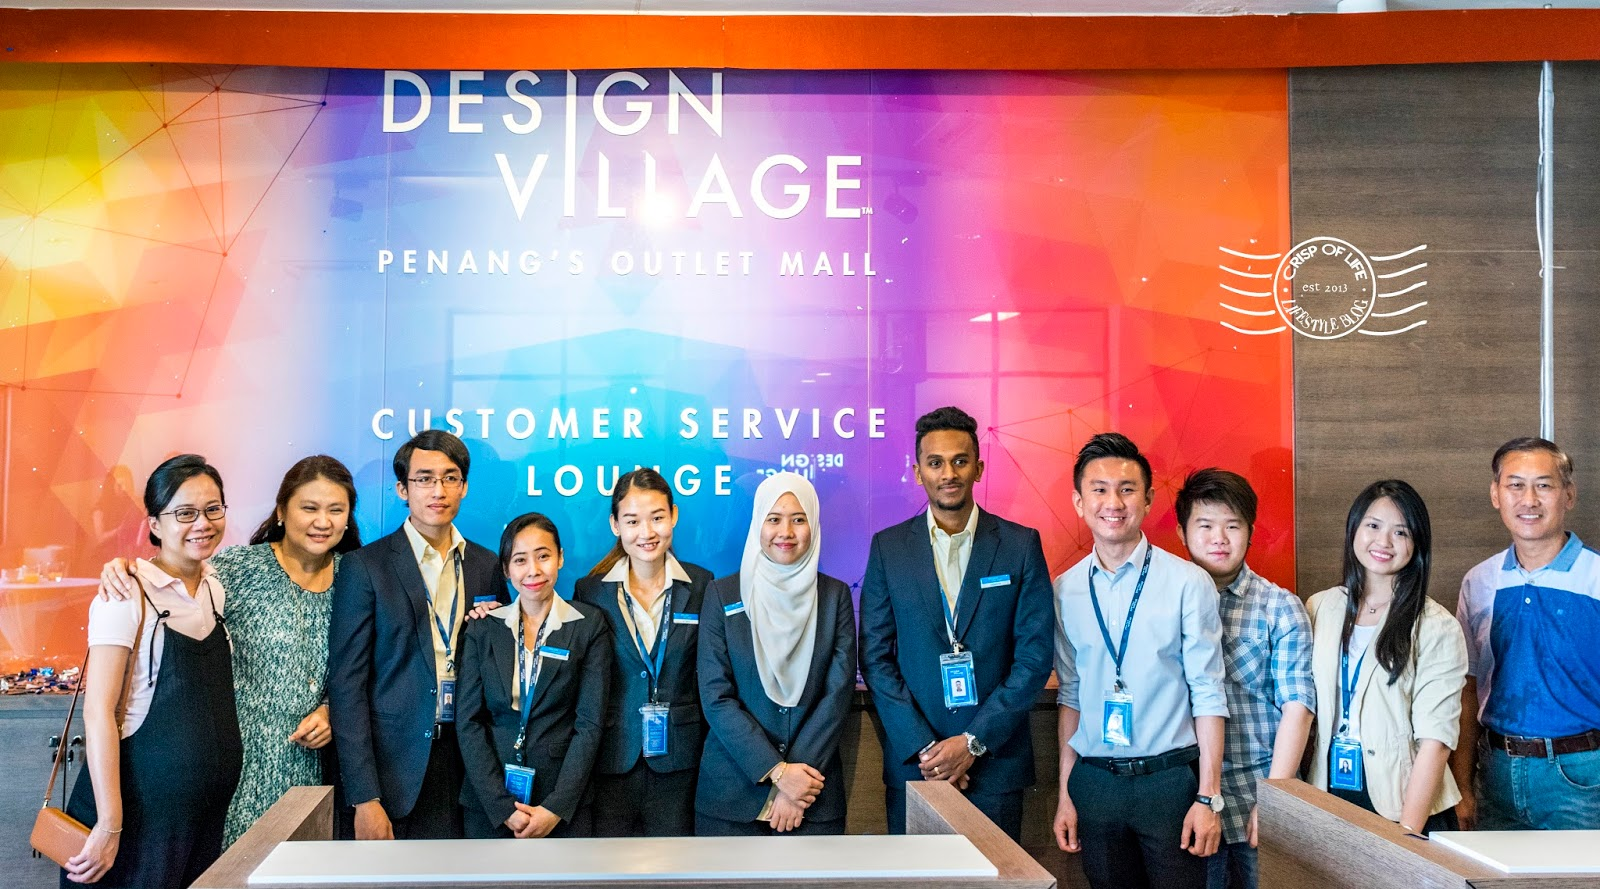 Design's Village Penang Outlet Mall's Customer Service Lounge launched!